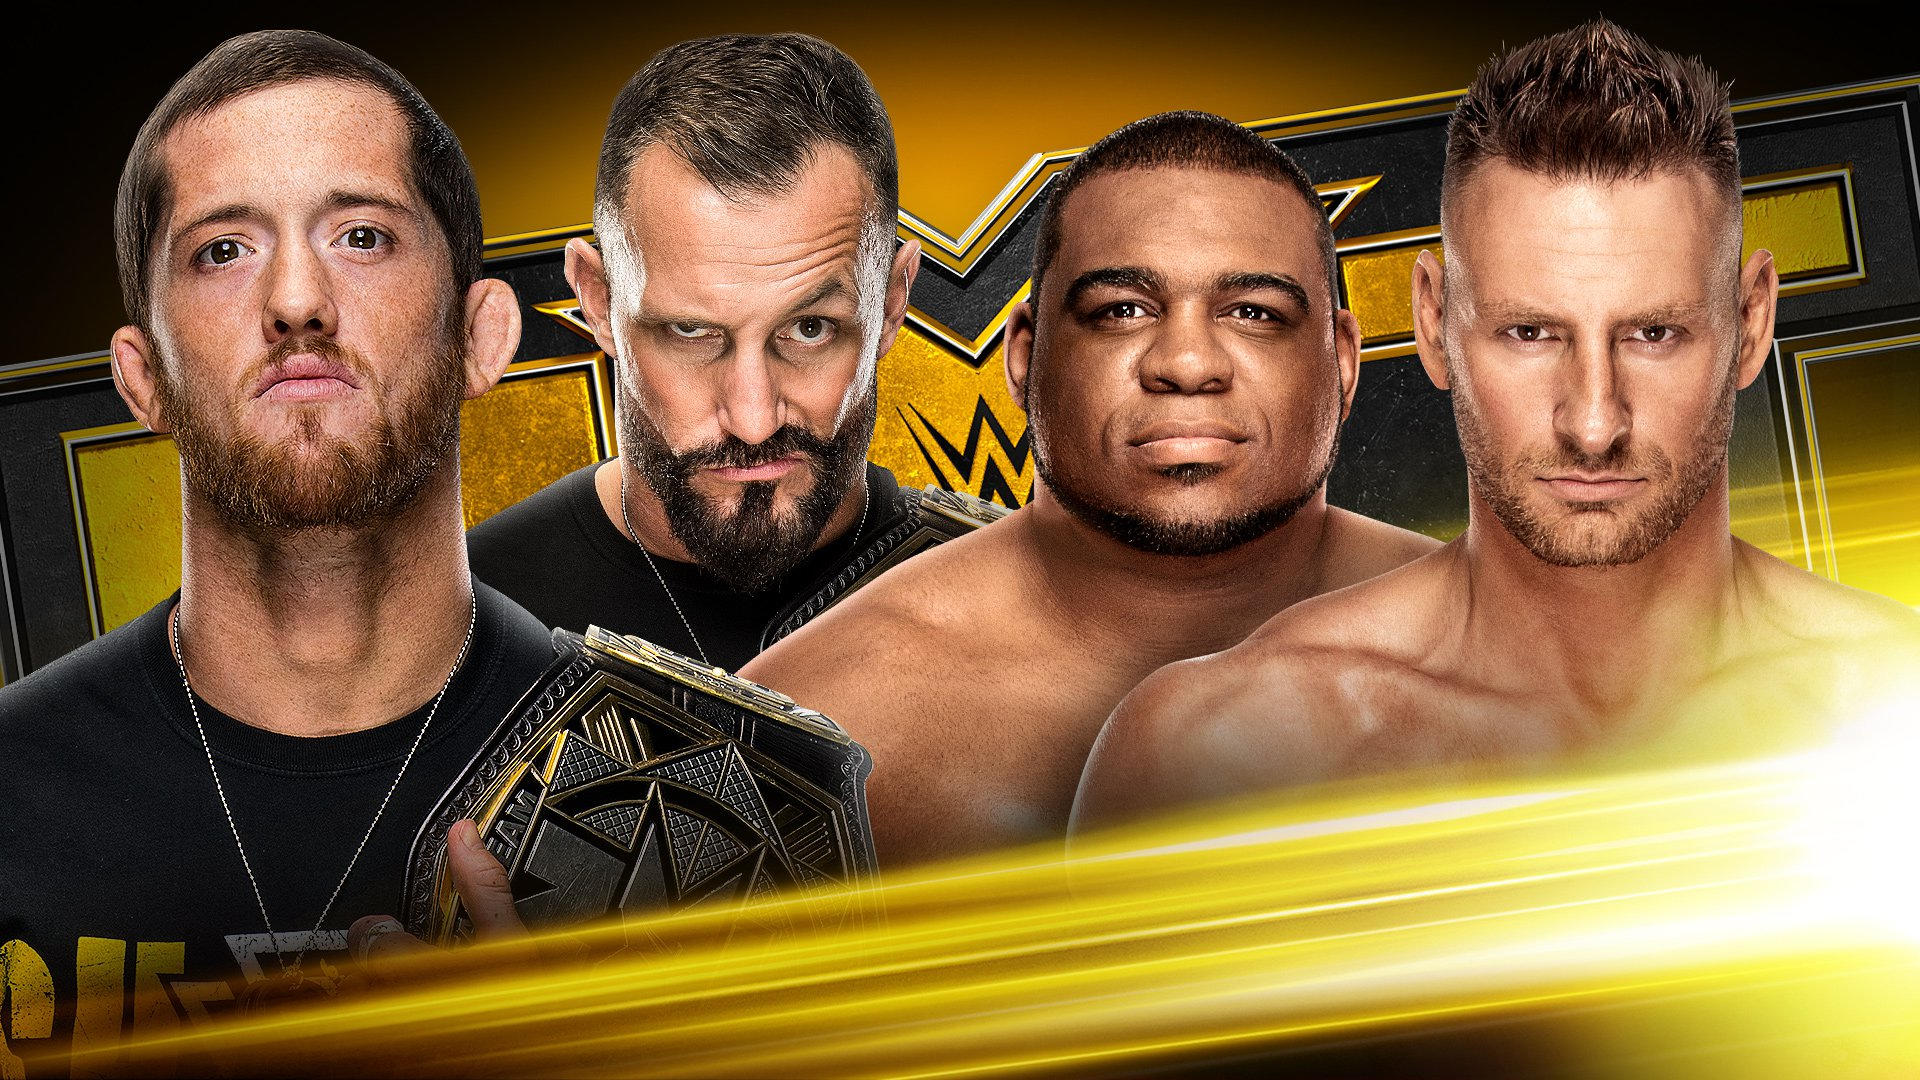 Wwe Nxt Results For November 27 2019 Undisputed Era Vs Keith Lee Dominik Dijakovic And More